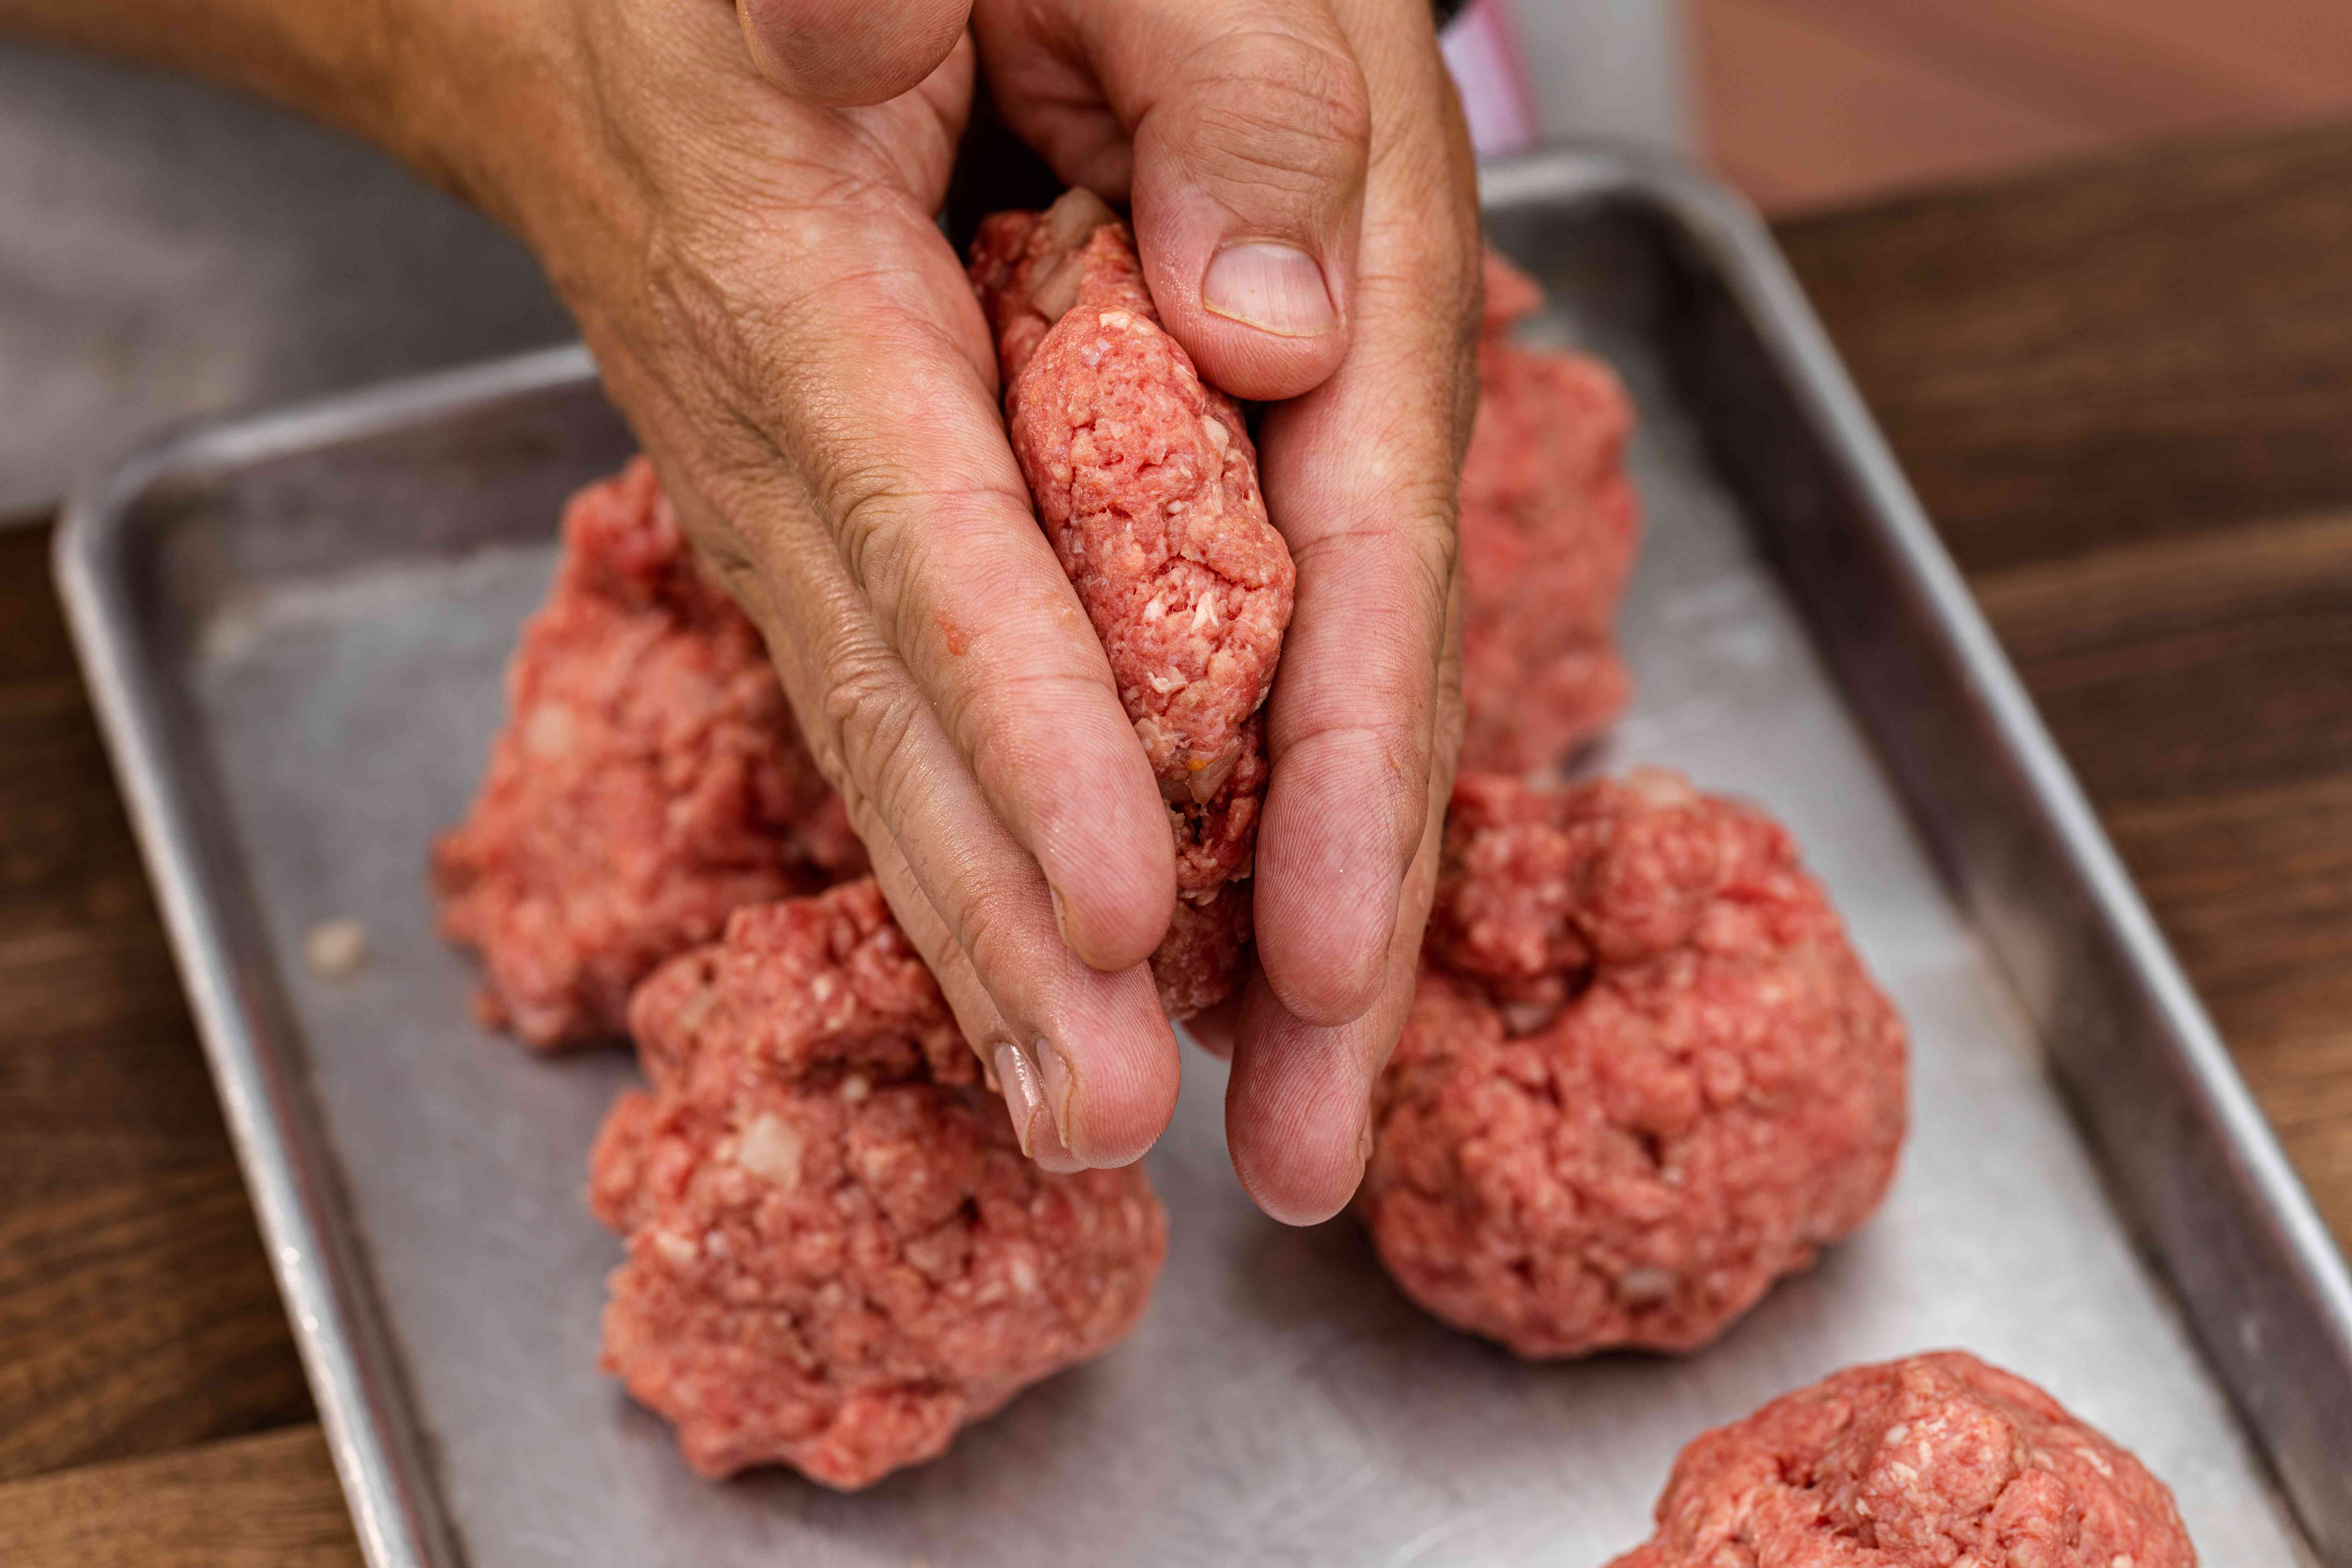 Hands flattening ground beef balls to make a classic bacon cheeseburger